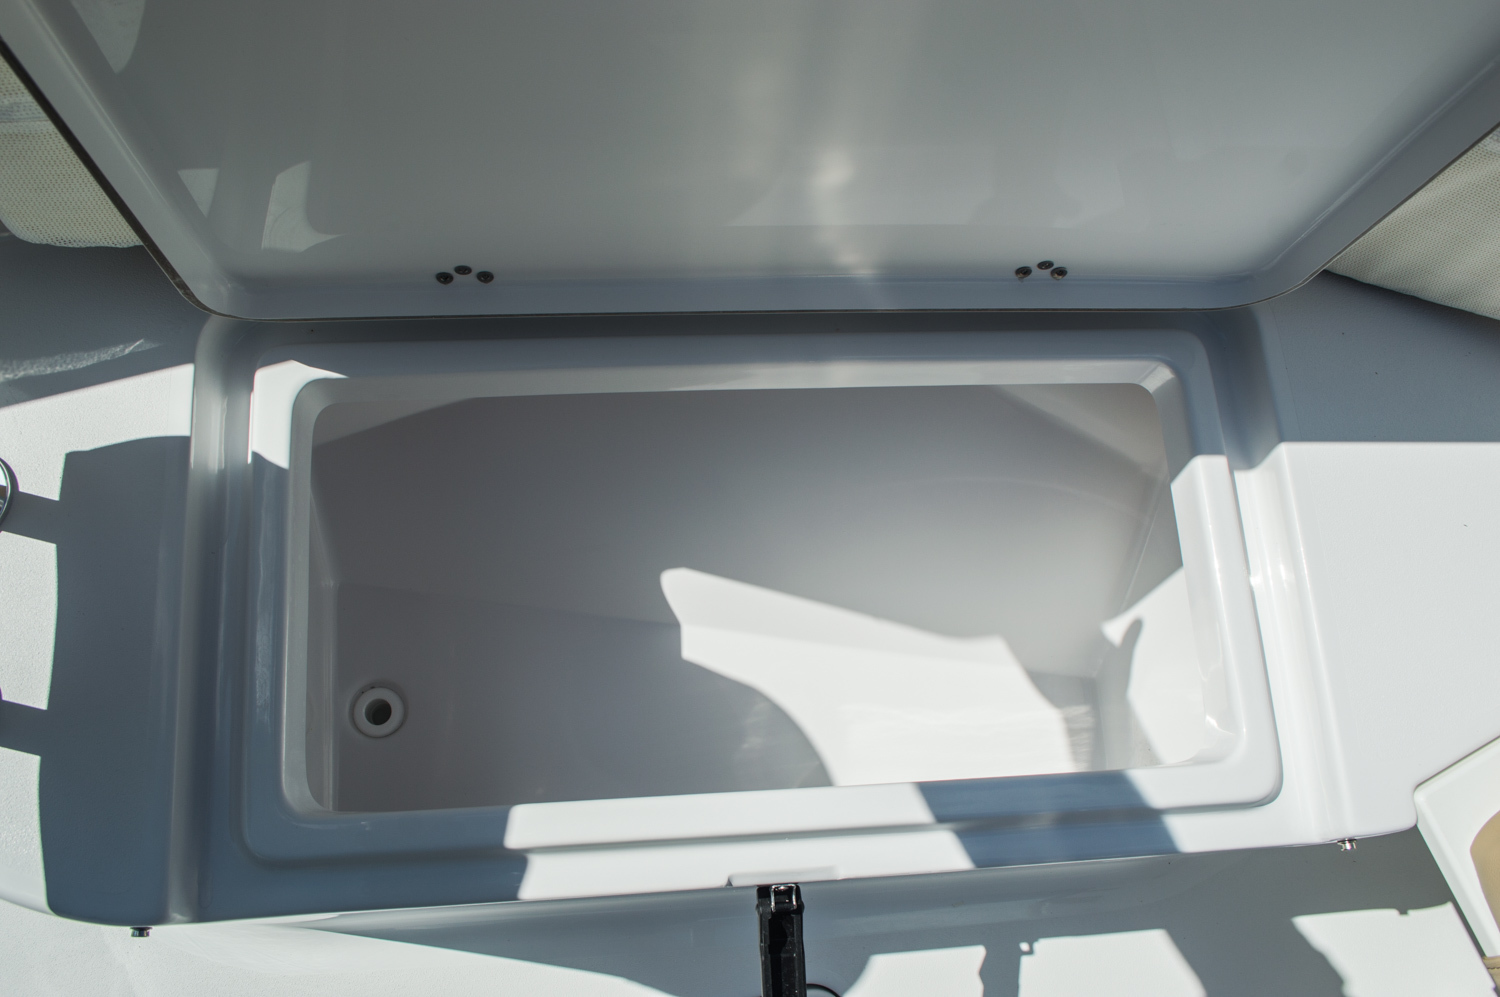 Thumbnail 13 for New 2016 Sportsman Heritage 251 Center Console boat for sale in West Palm Beach, FL